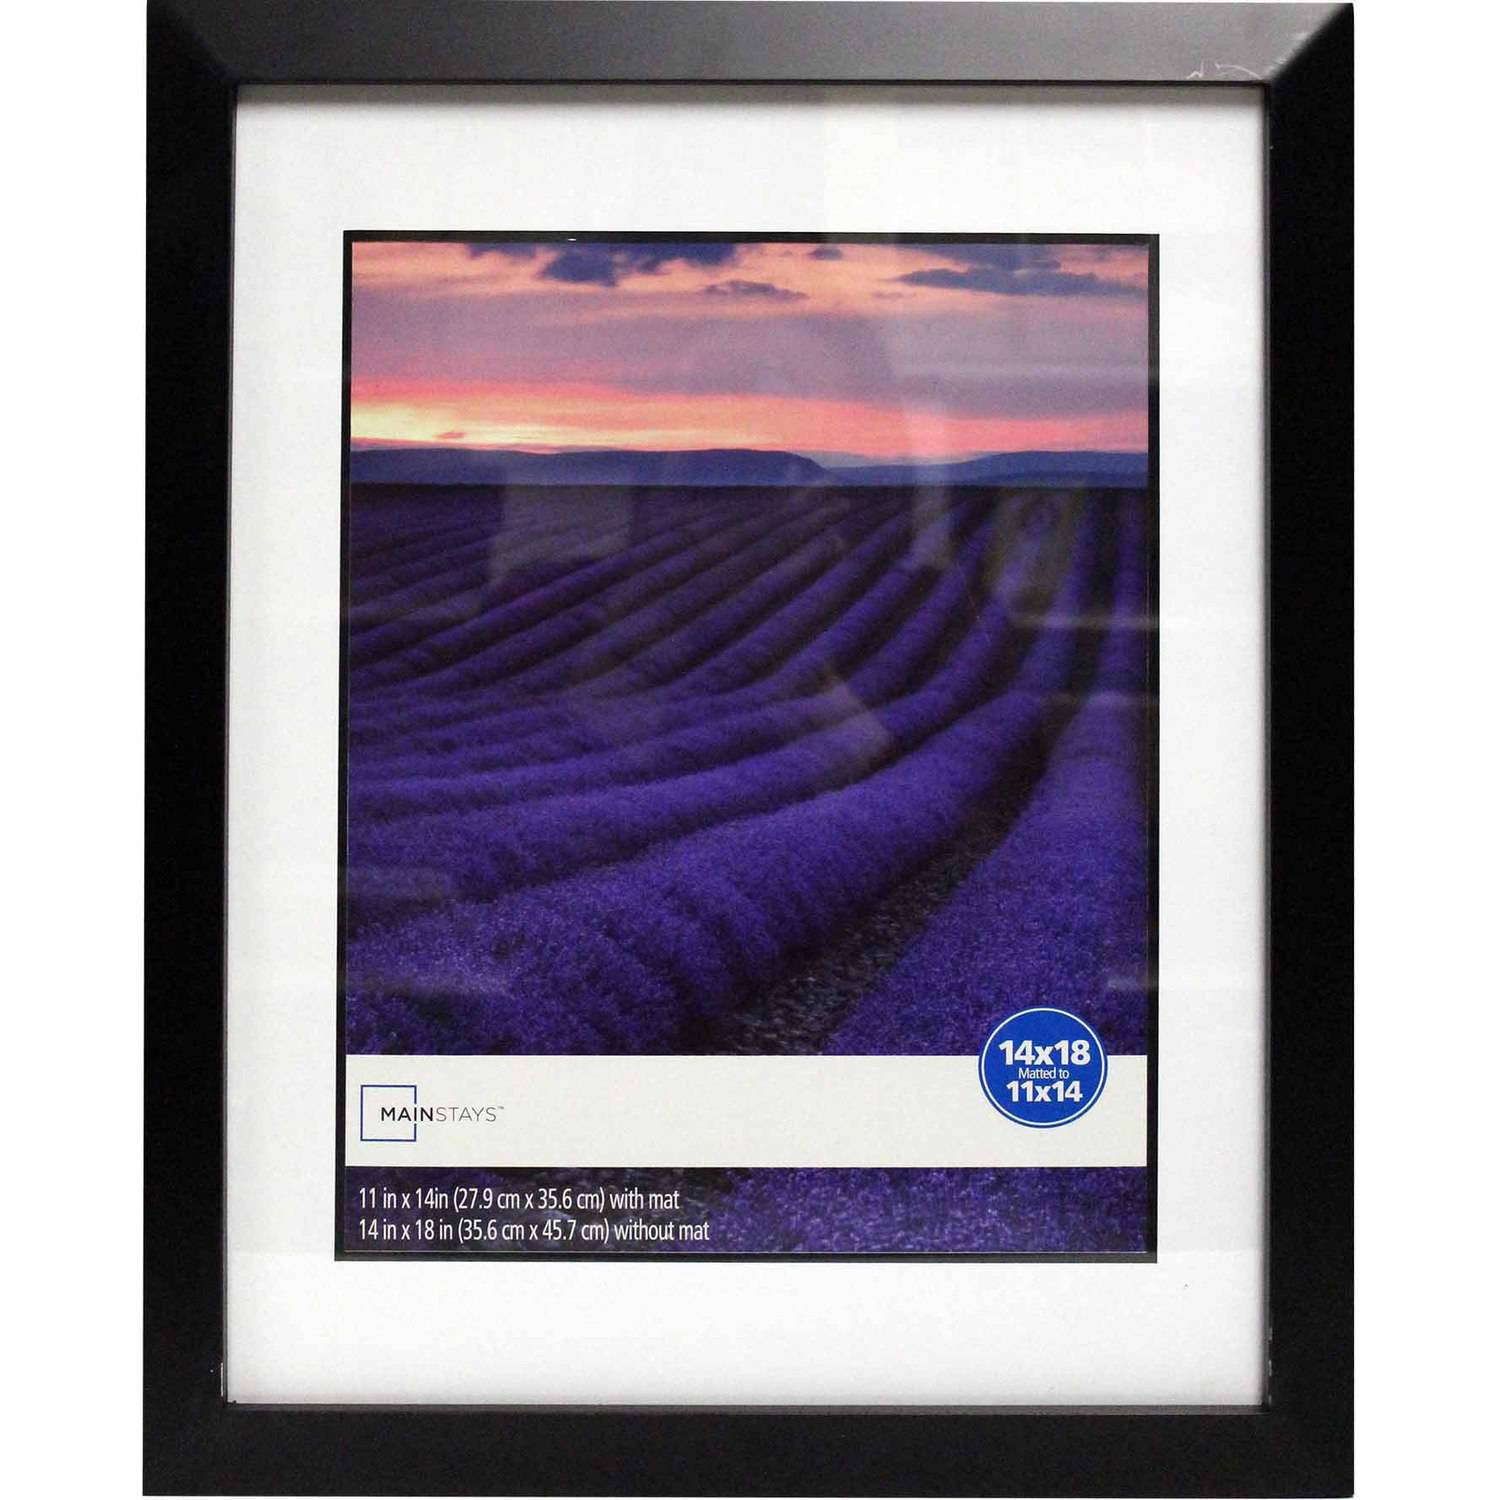 Mainstays Wide Picture Frame, 14x18 matted to 11x14 - Walmart.com